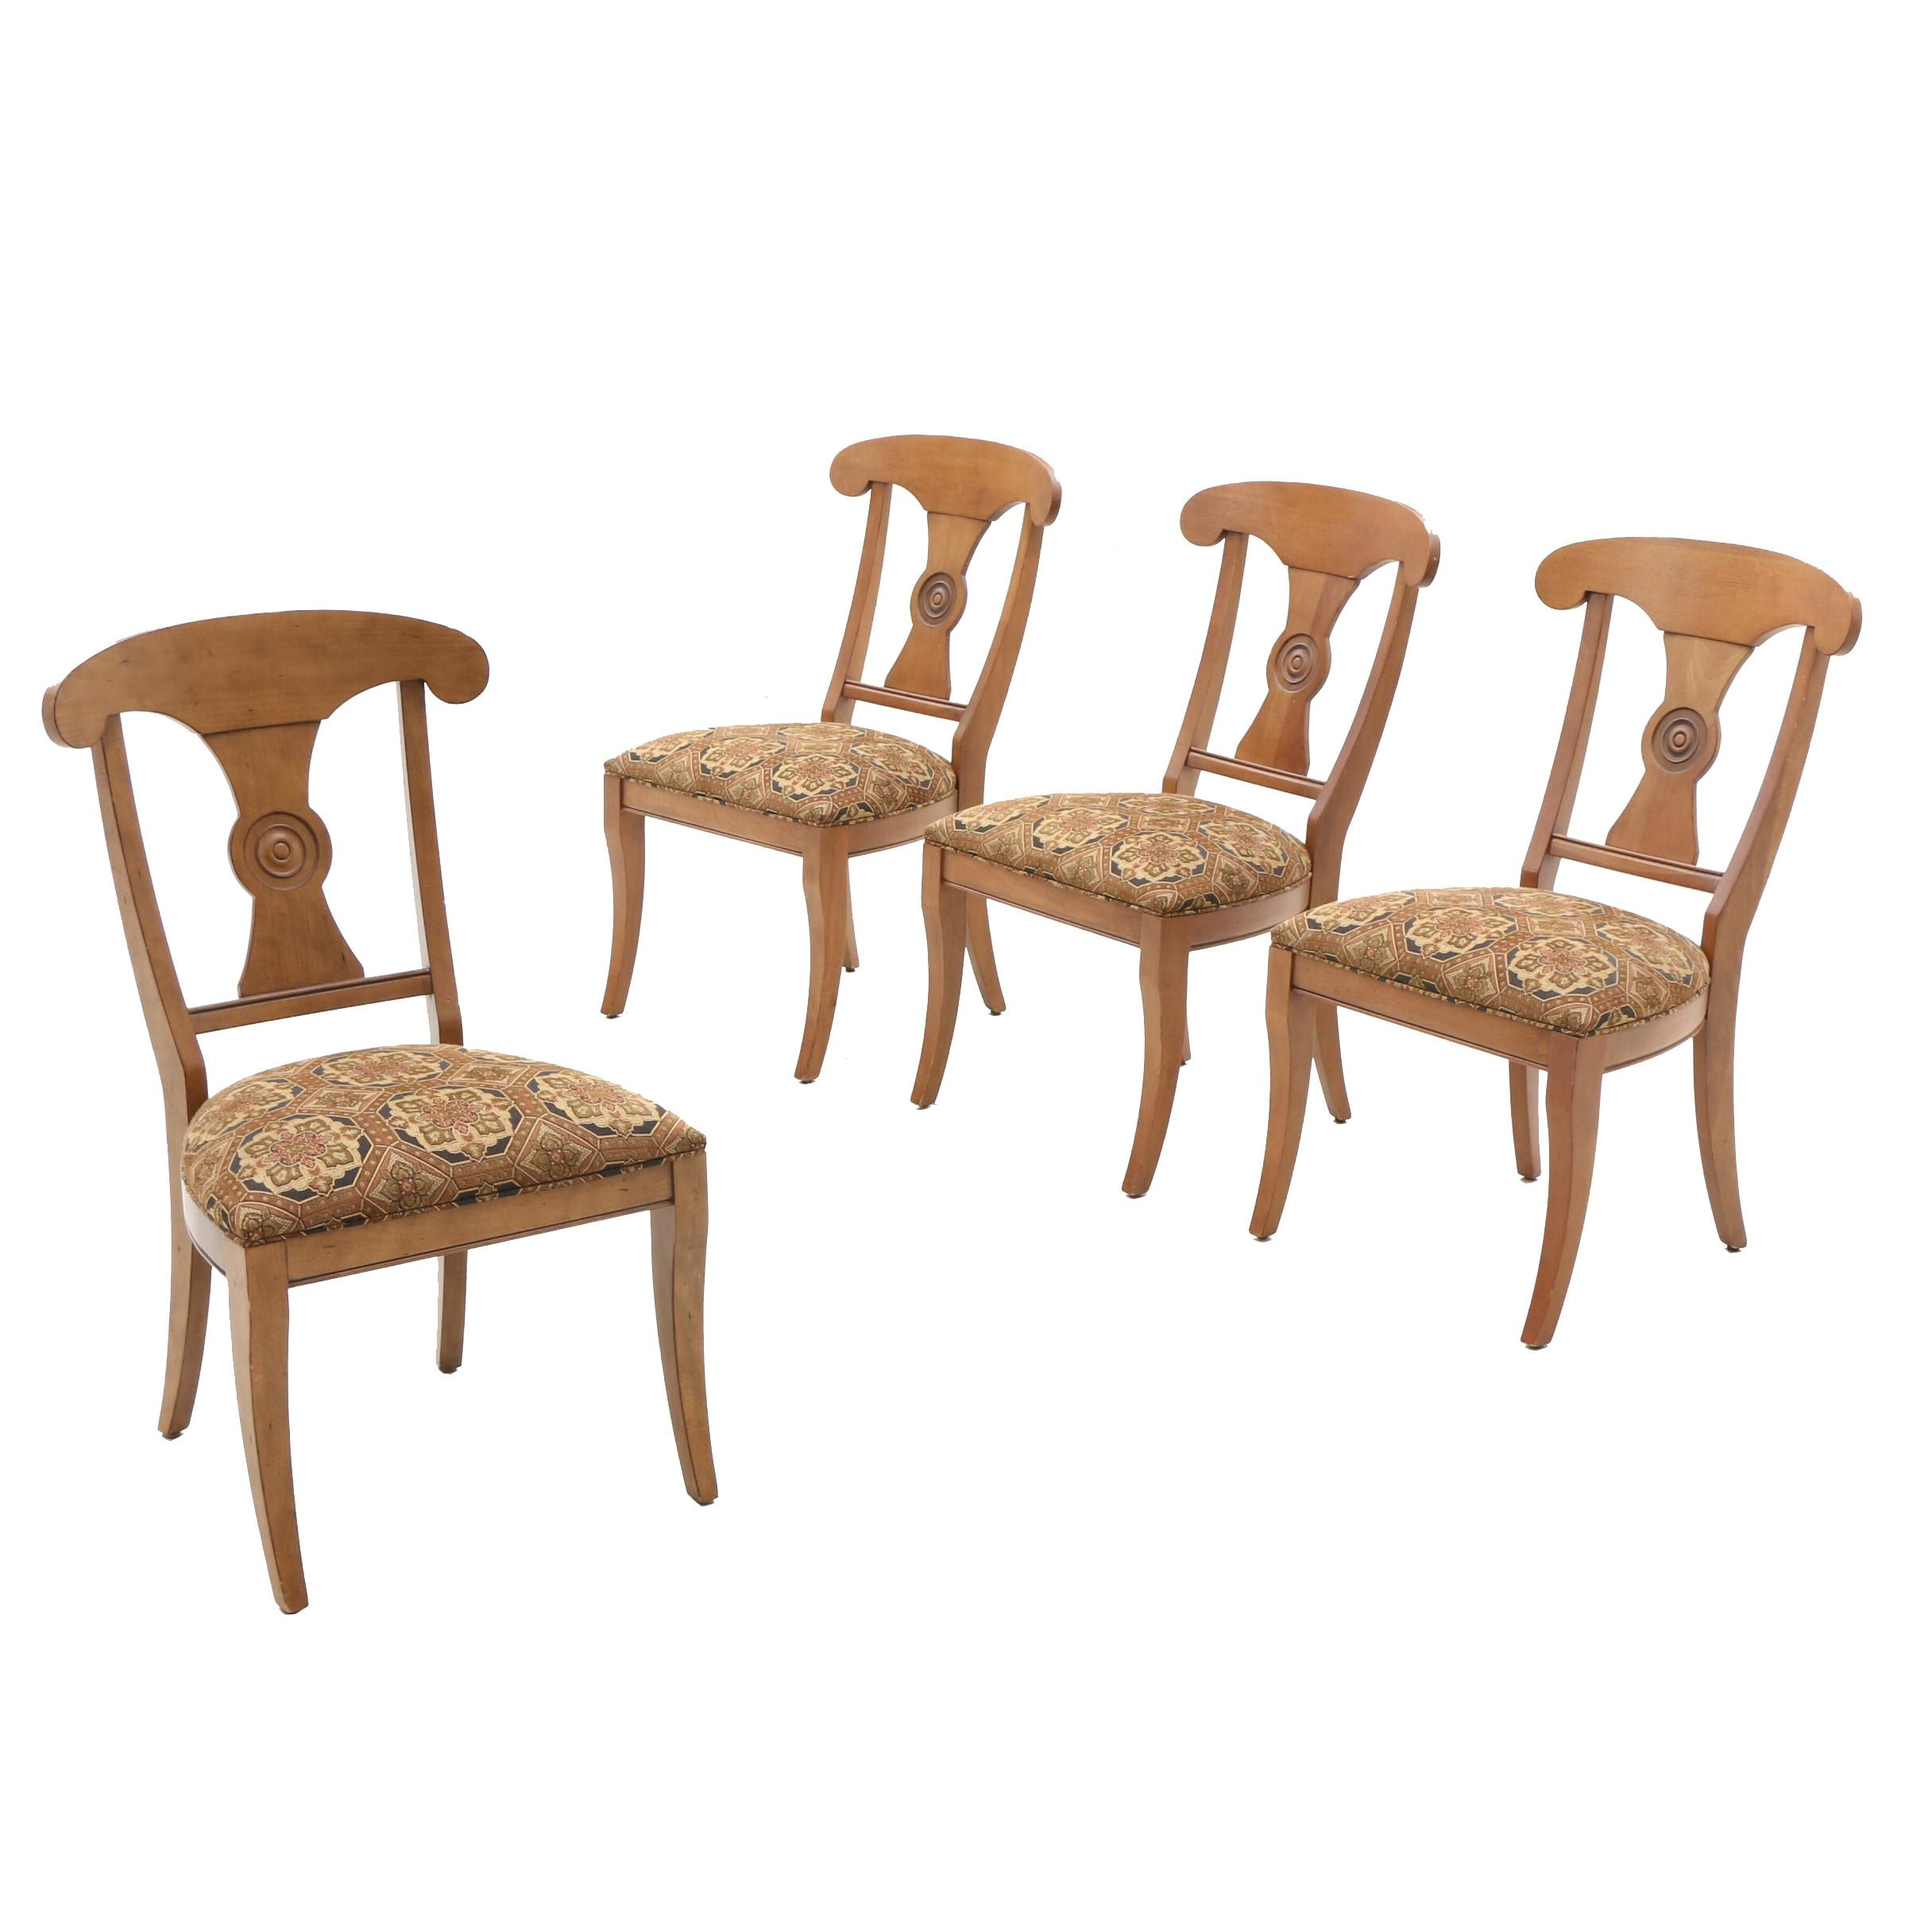 Biedermeier Style Chairs by Ethan Allen